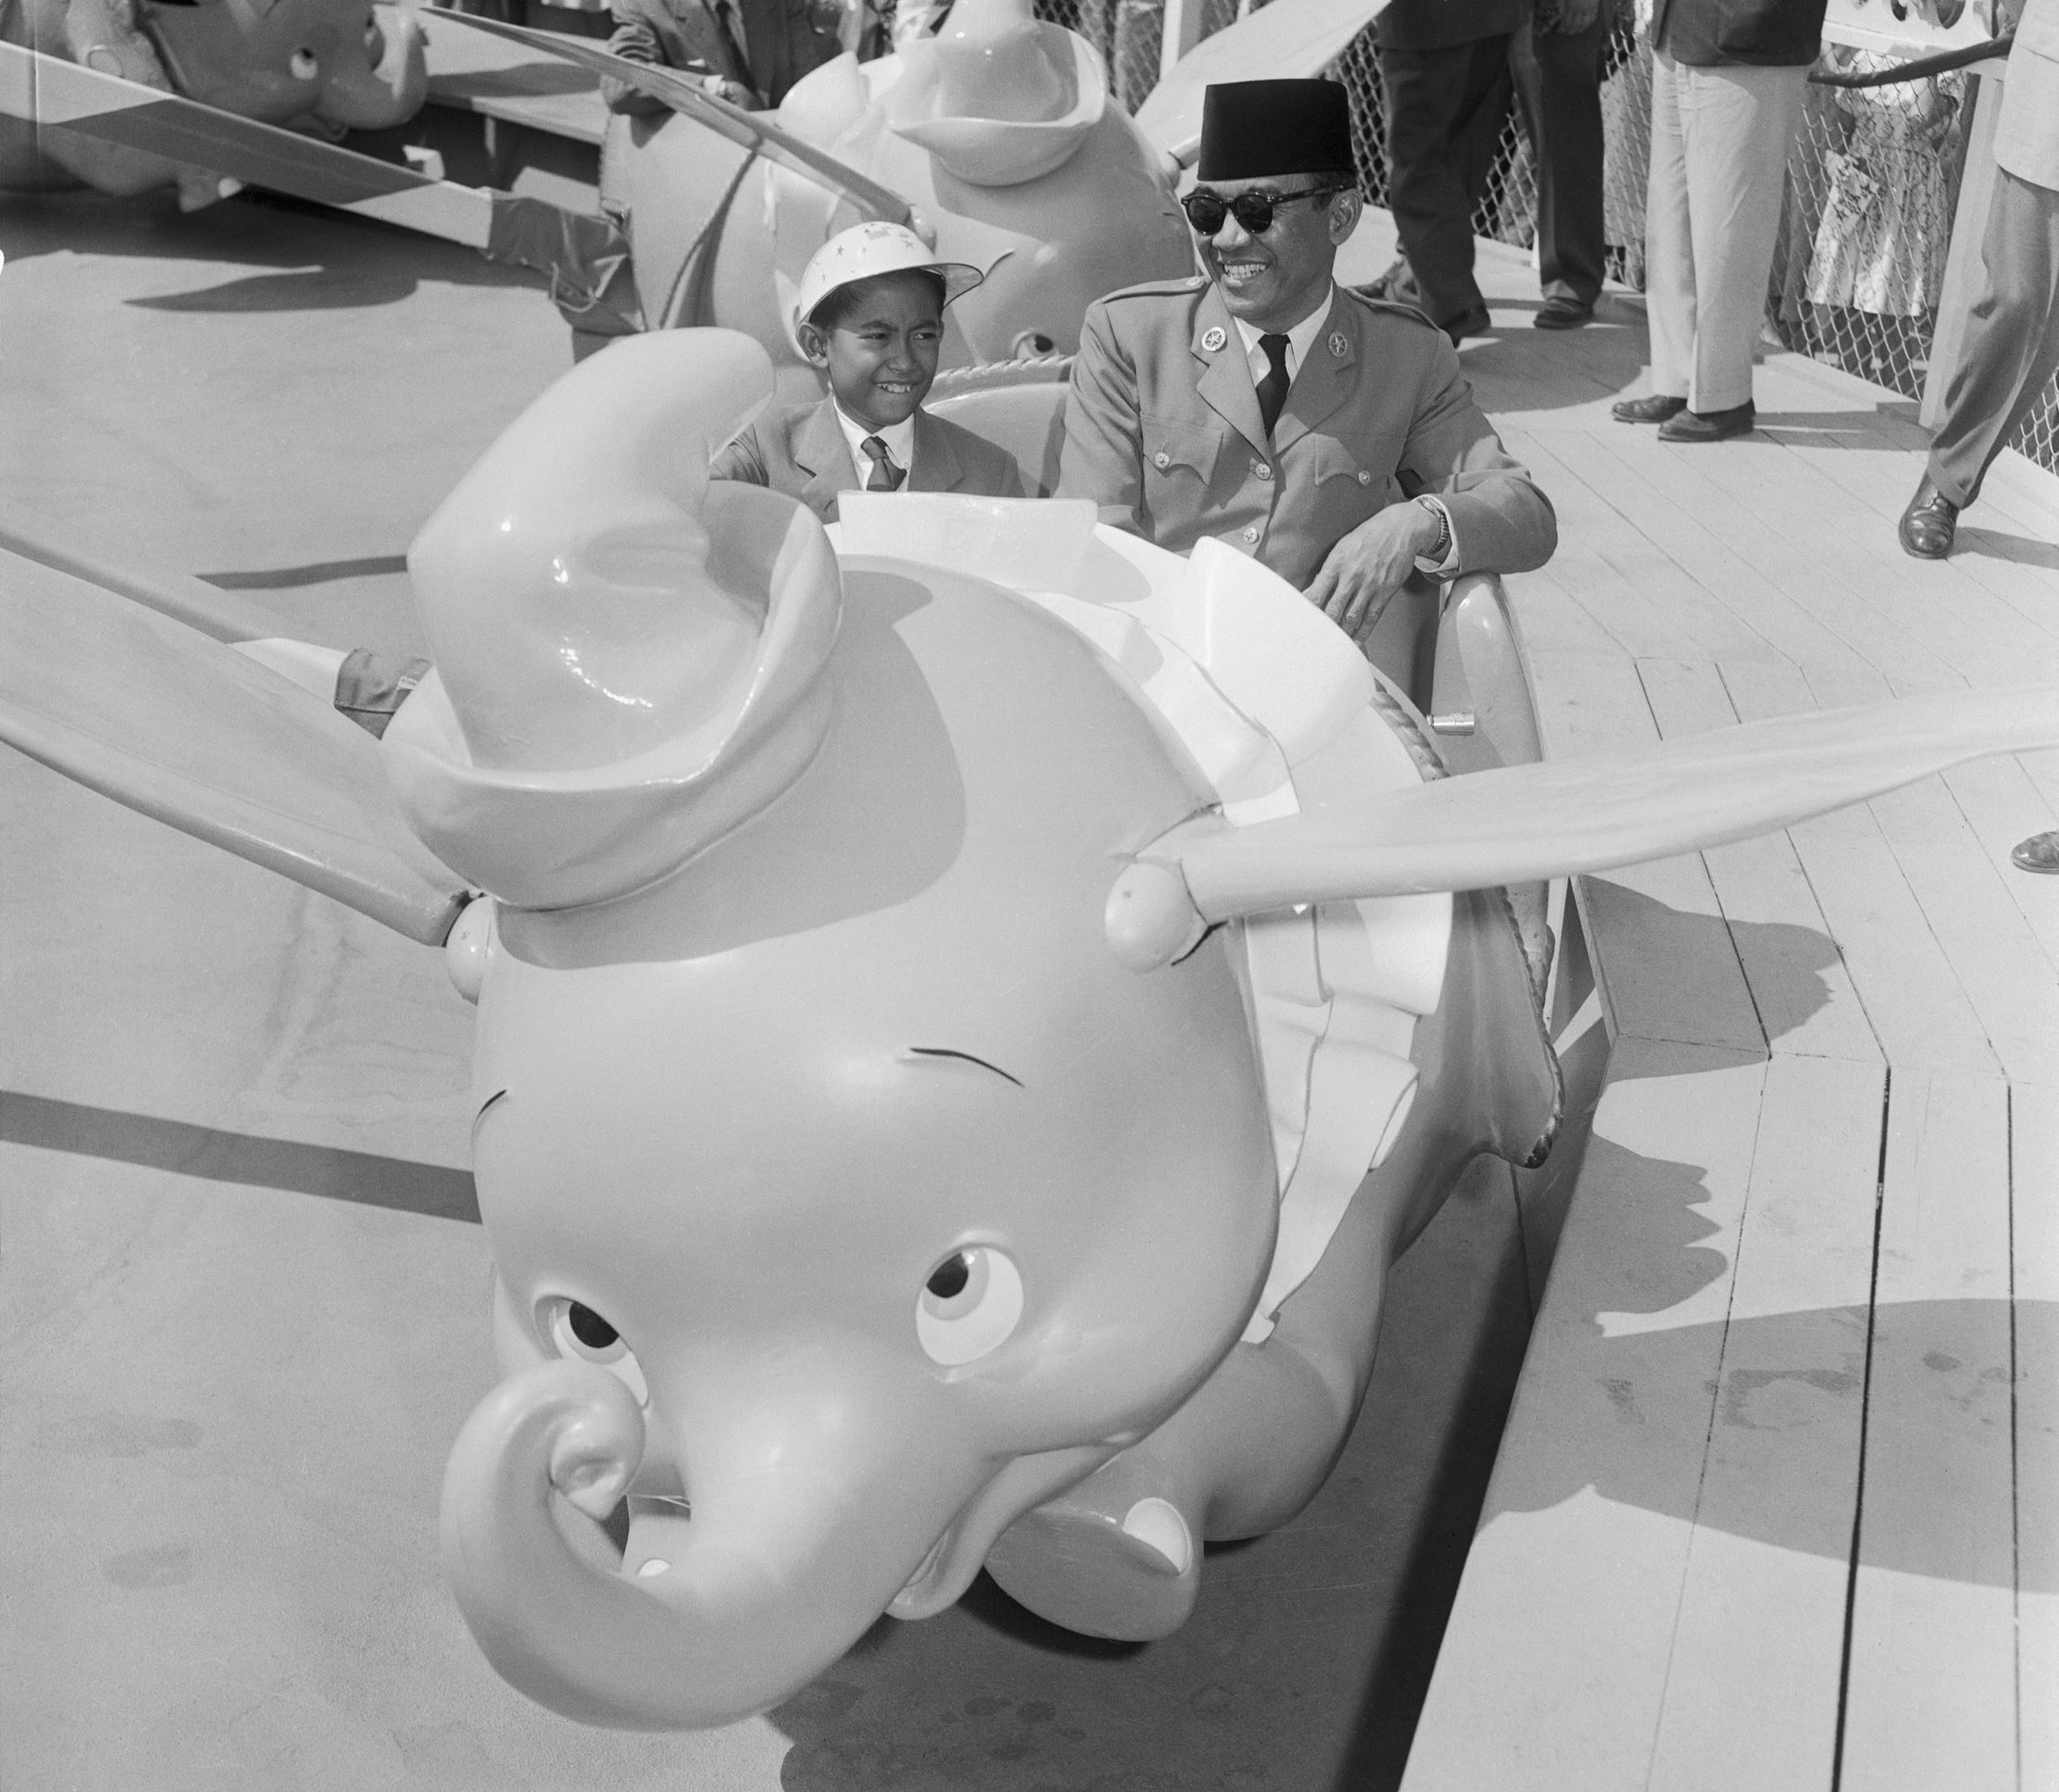 Slide 7 of 33: (Original Caption) 6/4/1956-Anaheim, California- Dr. Achmed Sukarno, President of Indonesia, now touring the US, is shown with his son, Guntur, 12, riding behind 'Dumbo,' one of the fabulous residents of Disneyland, during their visit to the famous playg